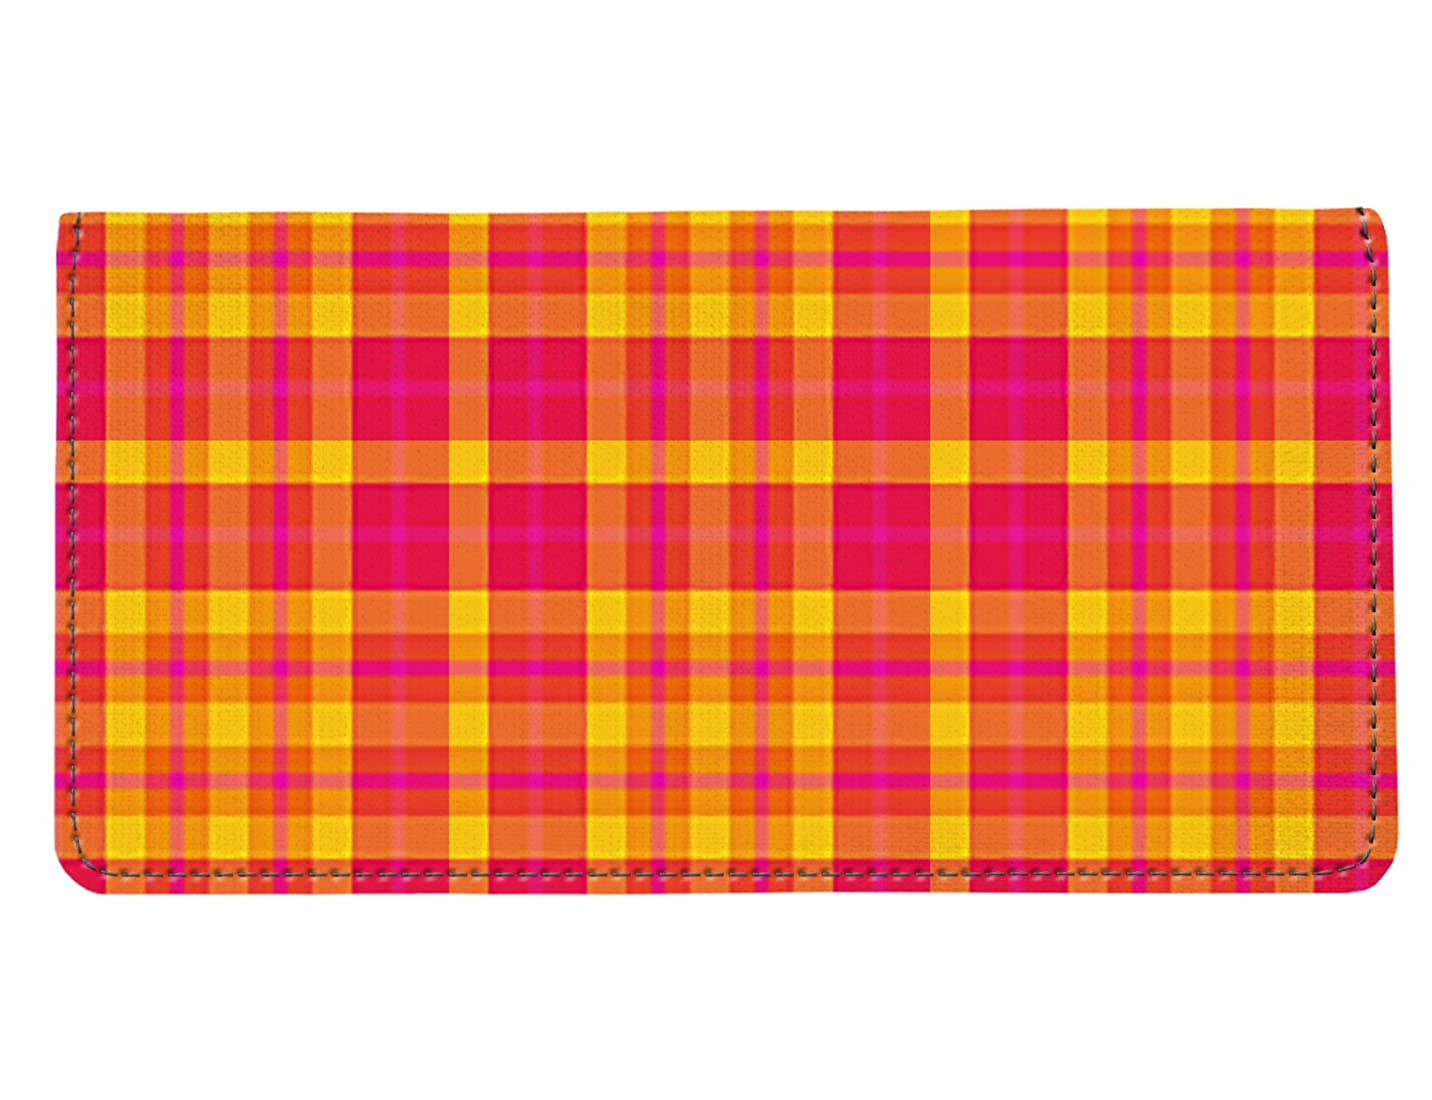 Amazon com: Snaptotes Trendy Yellow Pink Orange Plaid Design